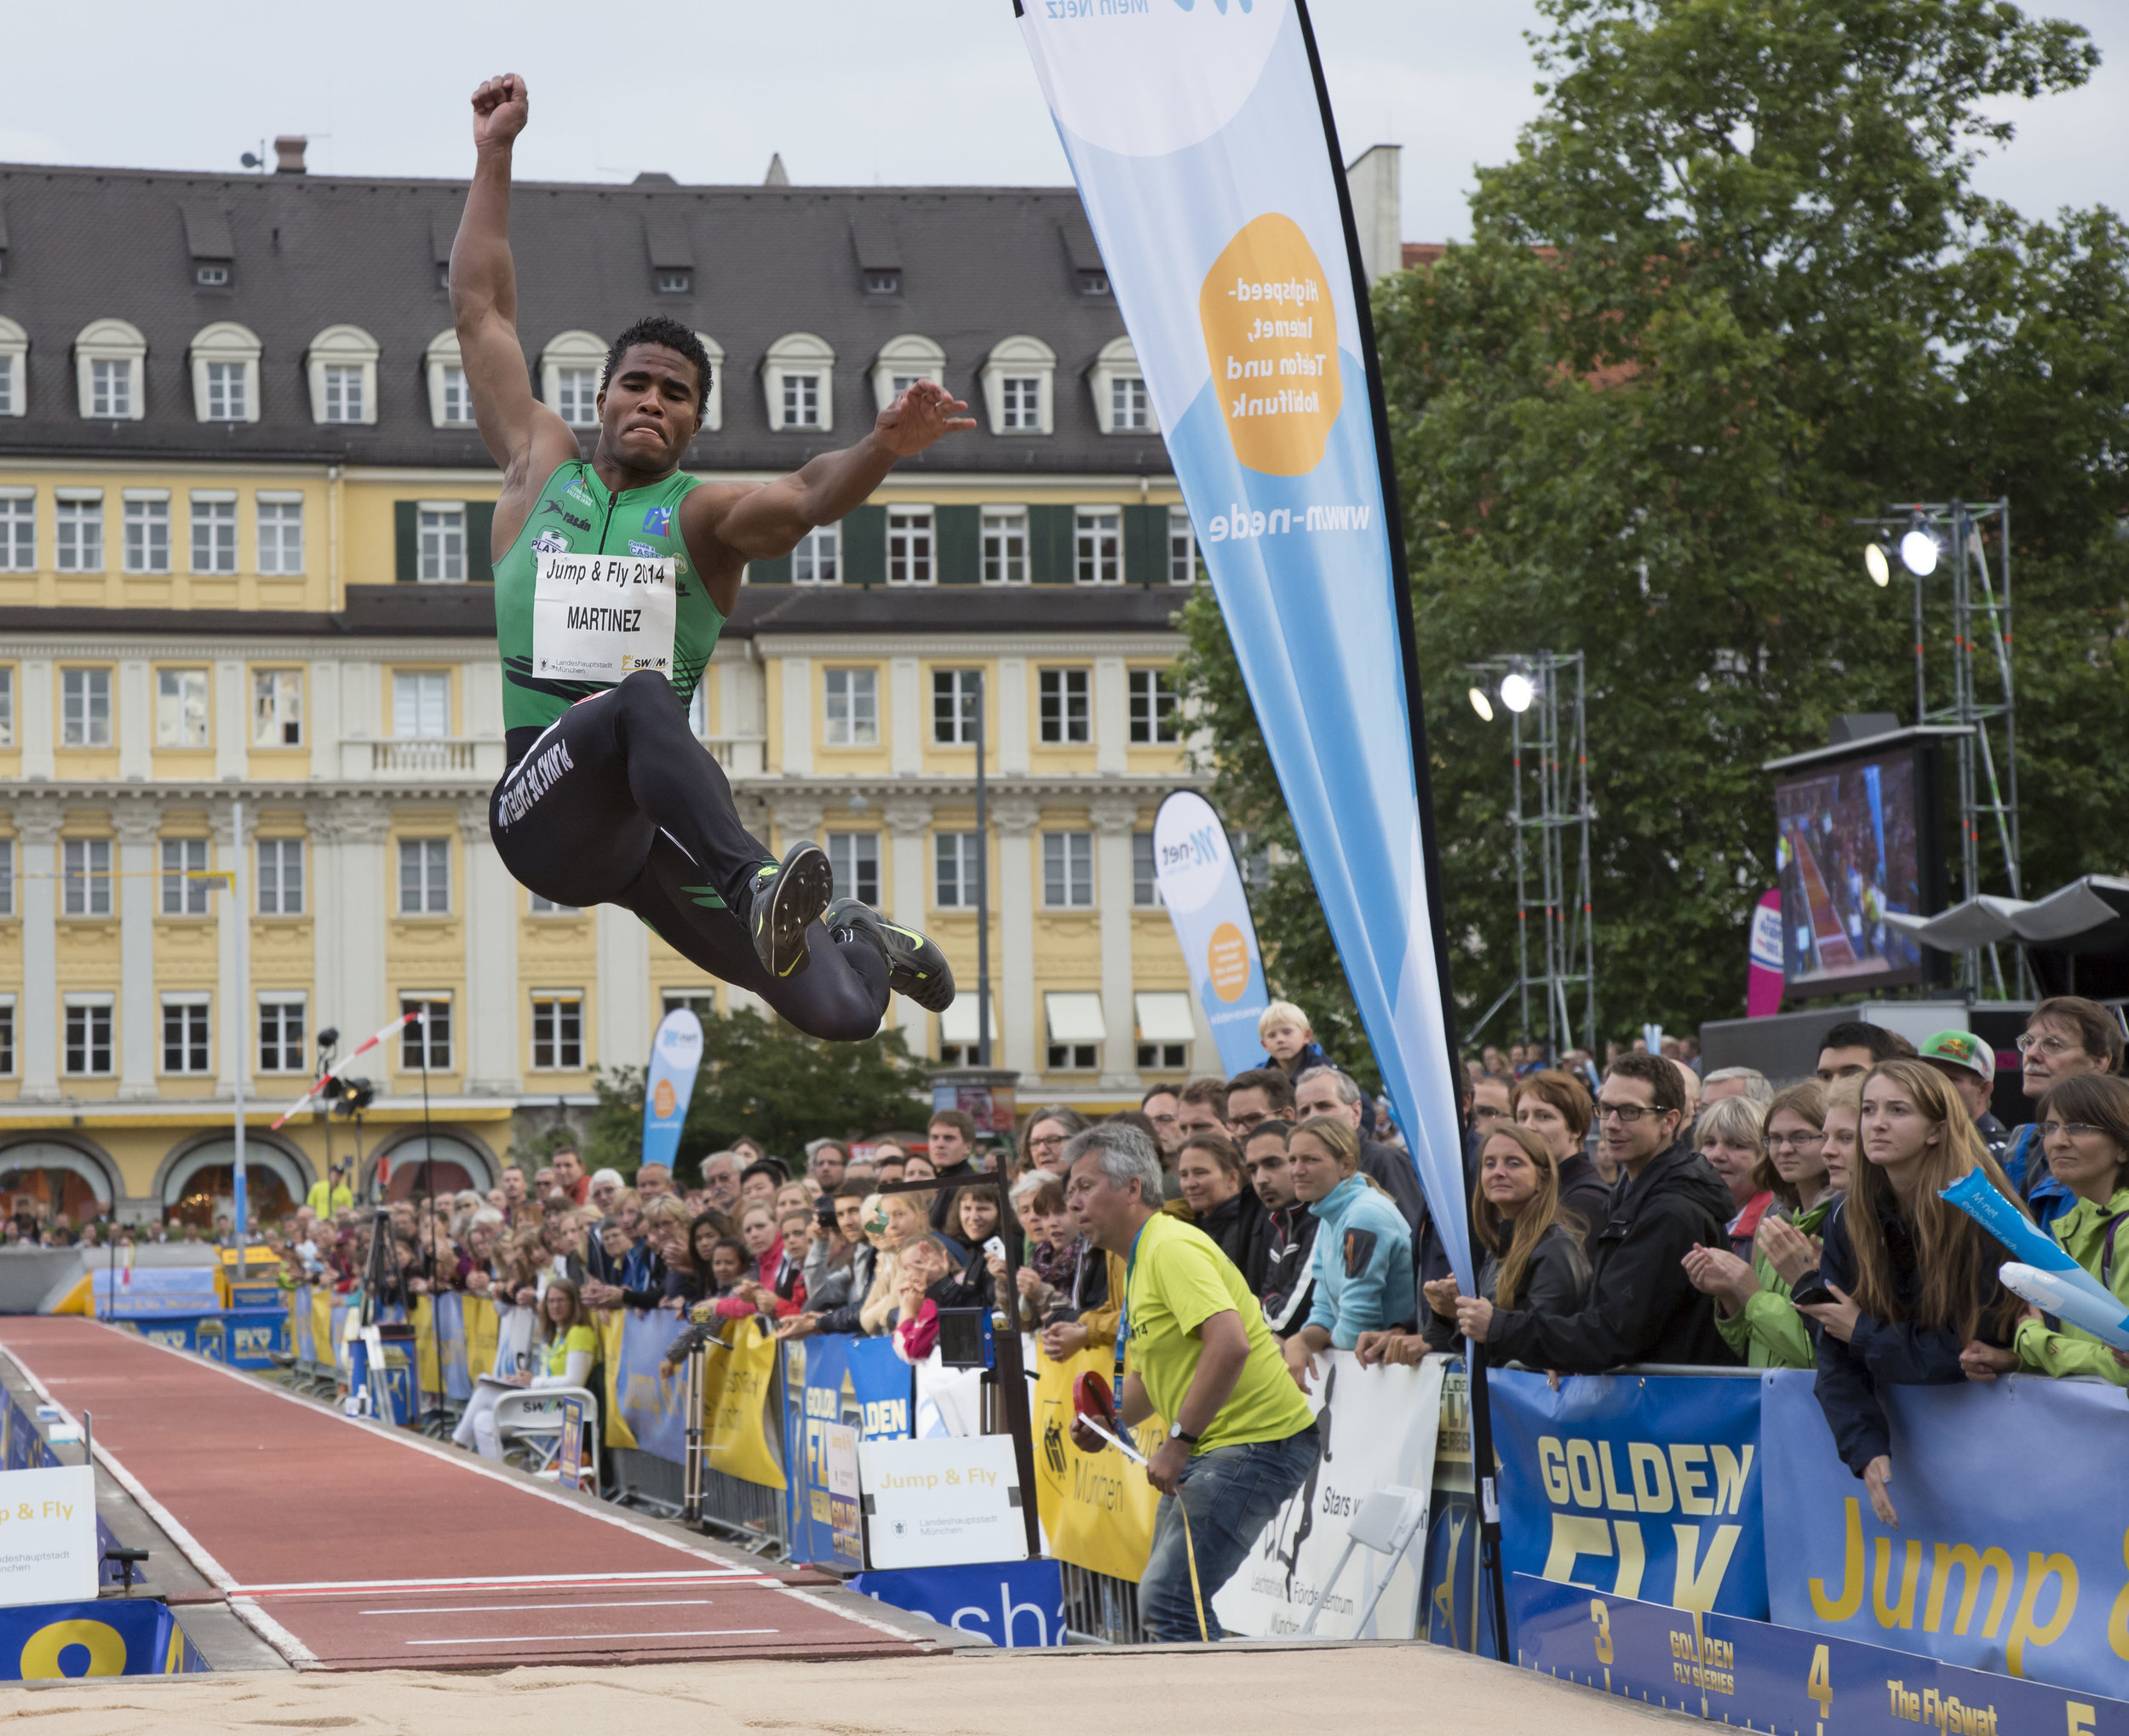 Jump_and_Fly_Munich_Martinez_by_Marcus_Buck.jpg